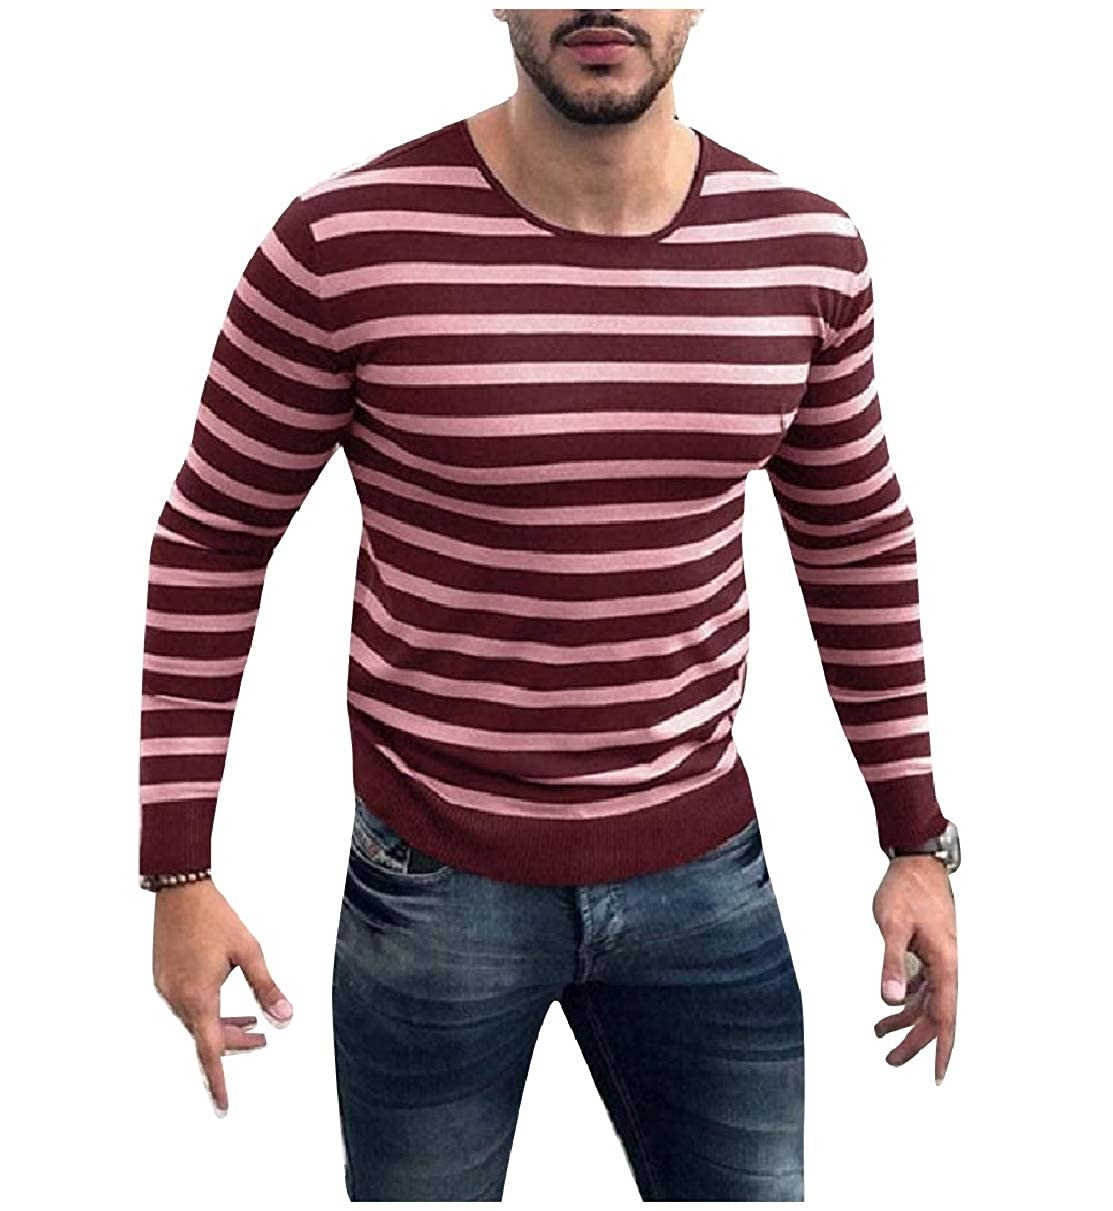 Coolred-Men Pullover Ultra Light Weight Crew-Neck Leisure Knitting Sweater